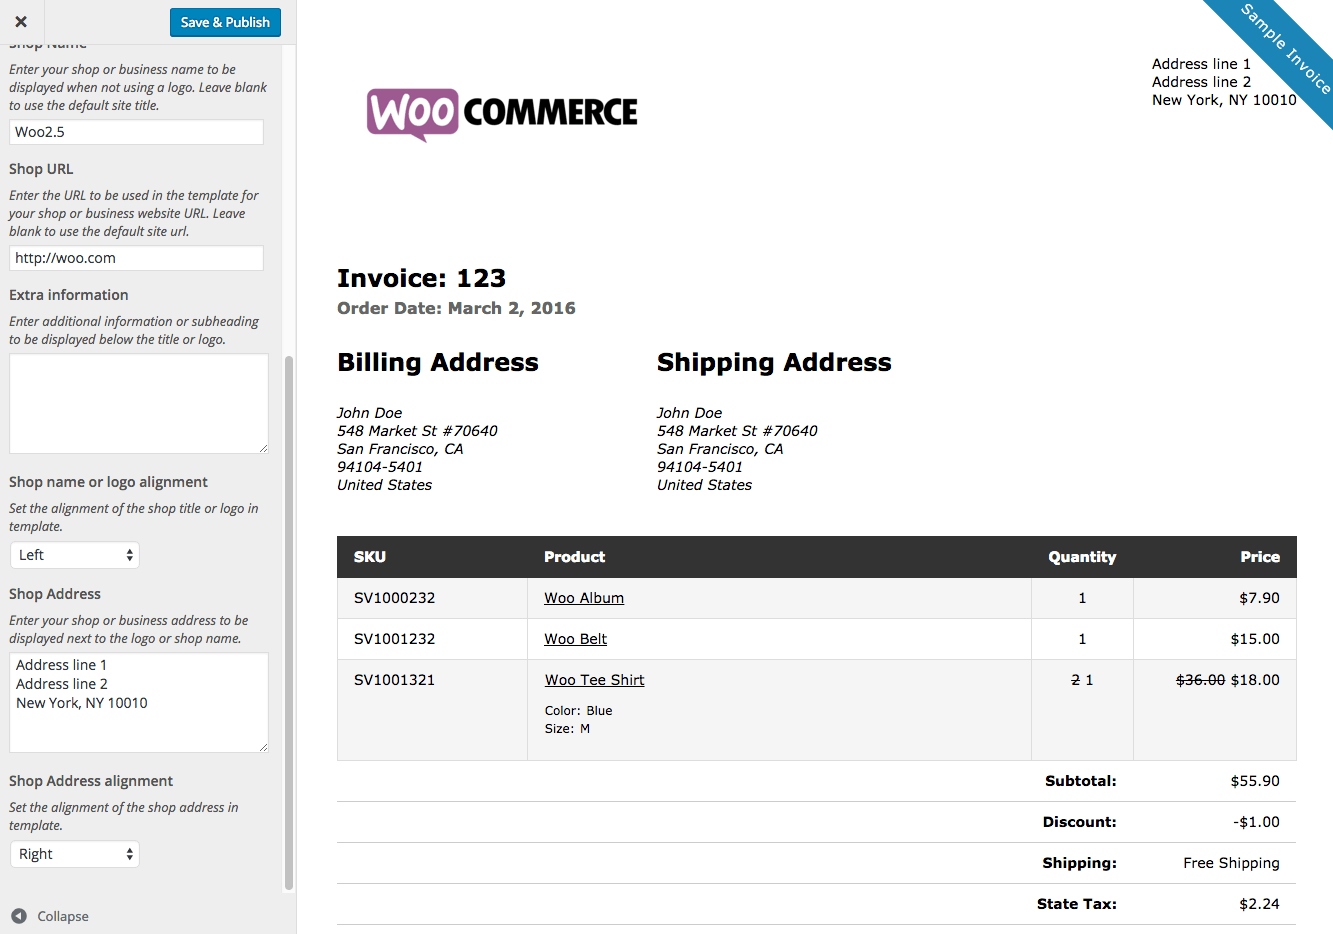 Usdgus  Stunning Print Invoices Amp Packing Lists  Woocommerce With Remarkable Woocommerce Print Invoices  Packing Lists Customizer With Lovely Word Invoice Templates Also Hvac Invoice In Addition How To Make An Invoice On Word And Invoices For Business As Well As Invoice Automation Additionally Net  Invoice From Woocommercecom With Usdgus  Remarkable Print Invoices Amp Packing Lists  Woocommerce With Lovely Woocommerce Print Invoices  Packing Lists Customizer And Stunning Word Invoice Templates Also Hvac Invoice In Addition How To Make An Invoice On Word From Woocommercecom